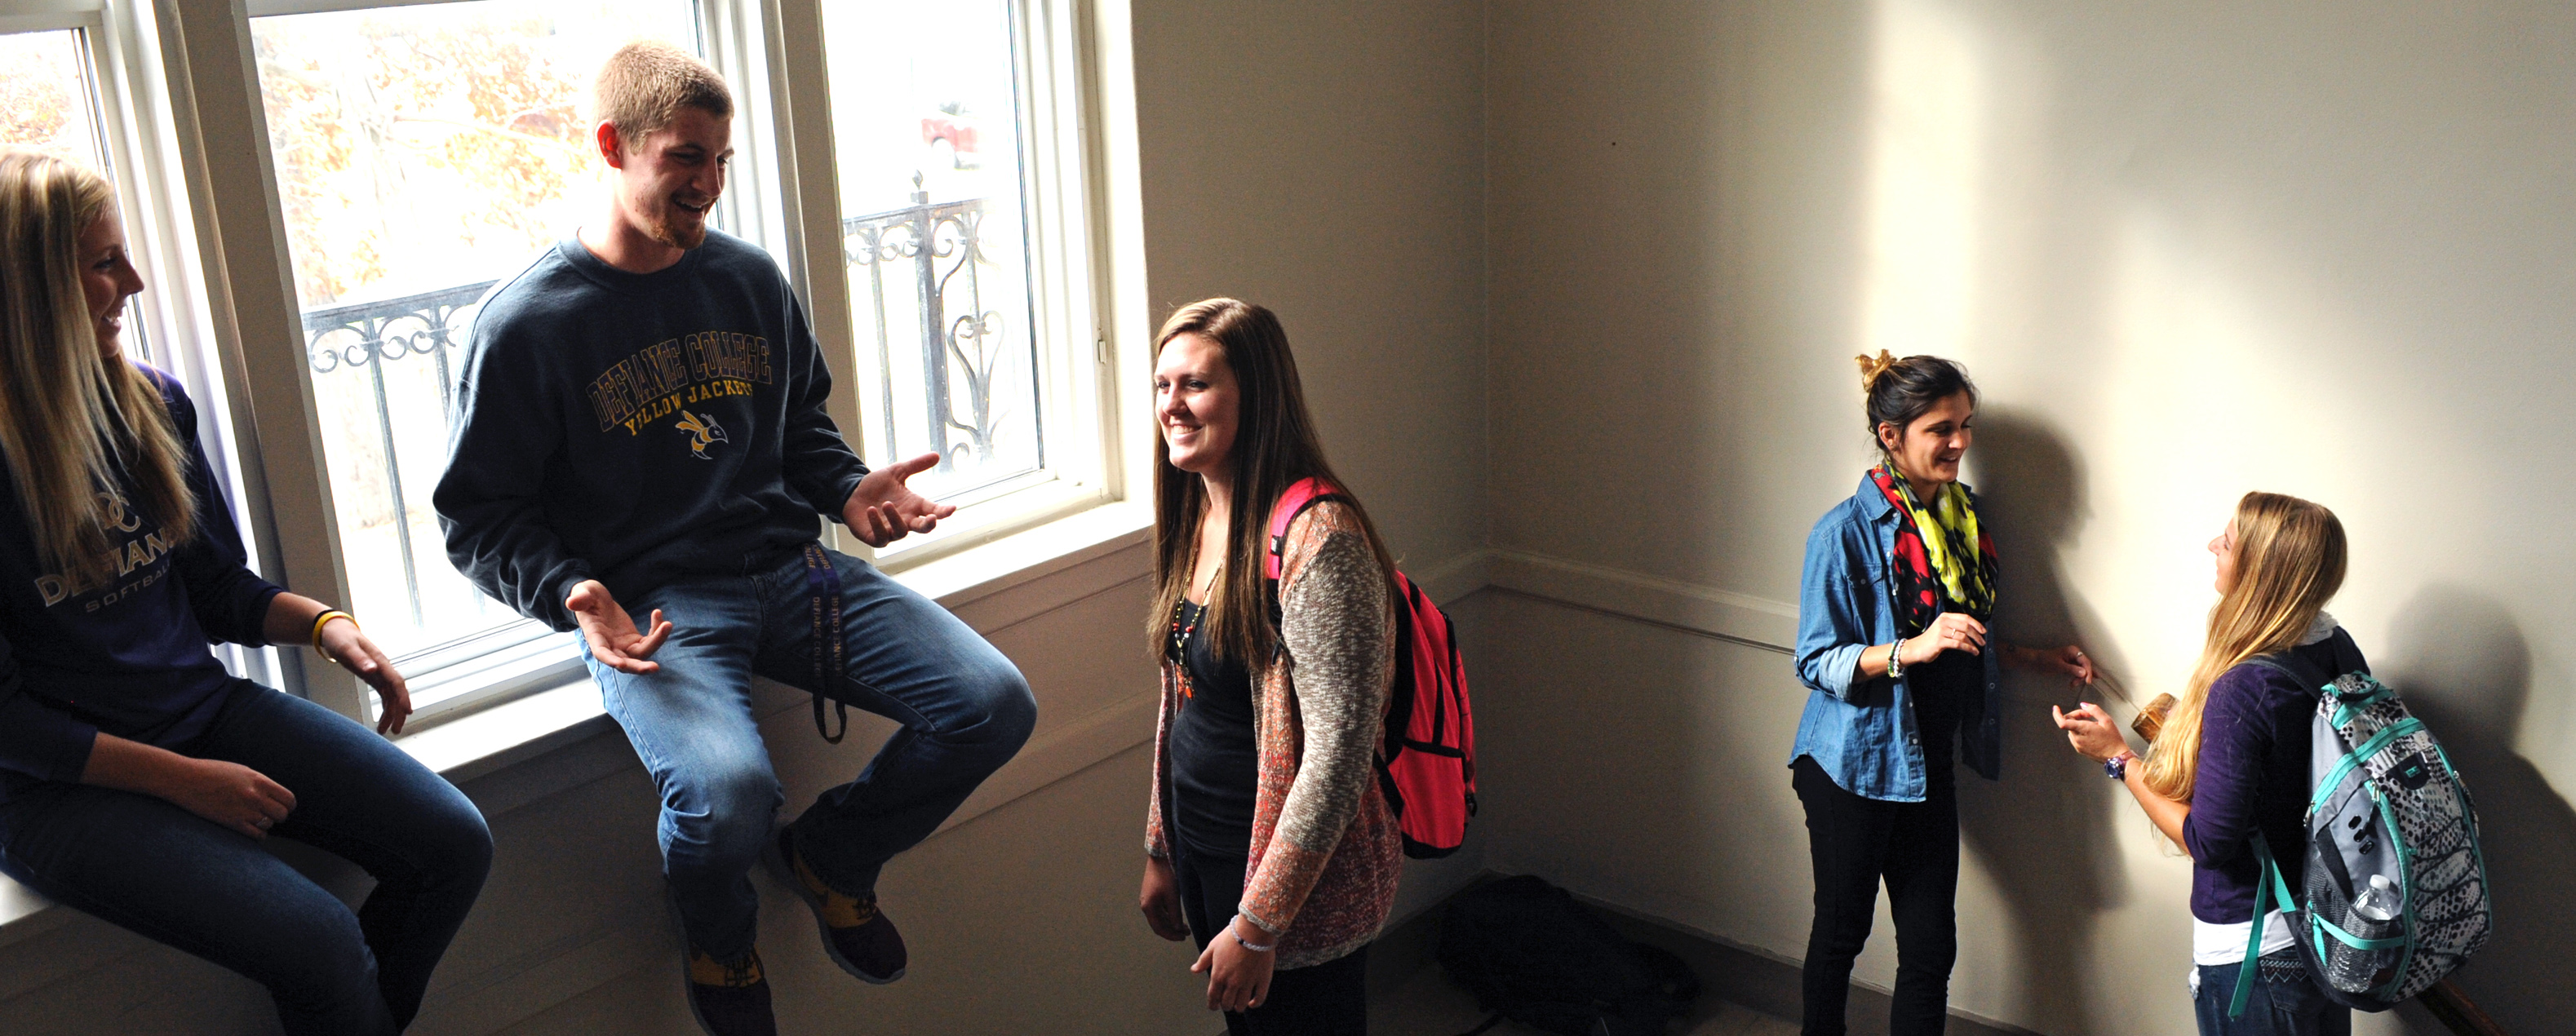 Five students gathered and speaking together in a large stairwell. Light from the big window in the background highlights the room.